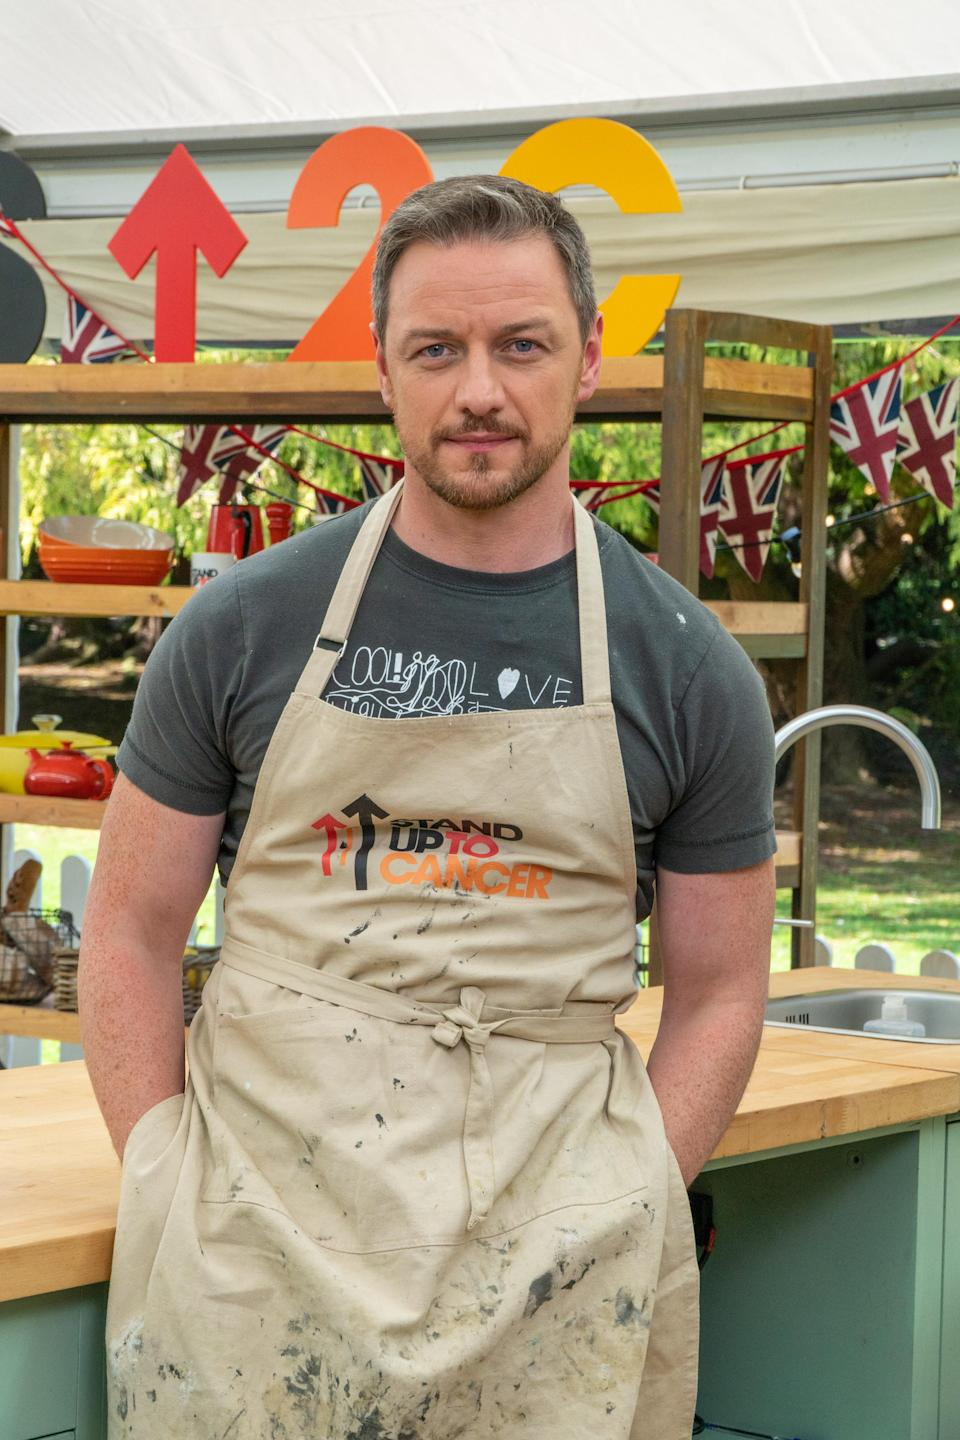 Actor James McAvoy will be trying to impress with his baking skills (Channel 4/Love Productions)